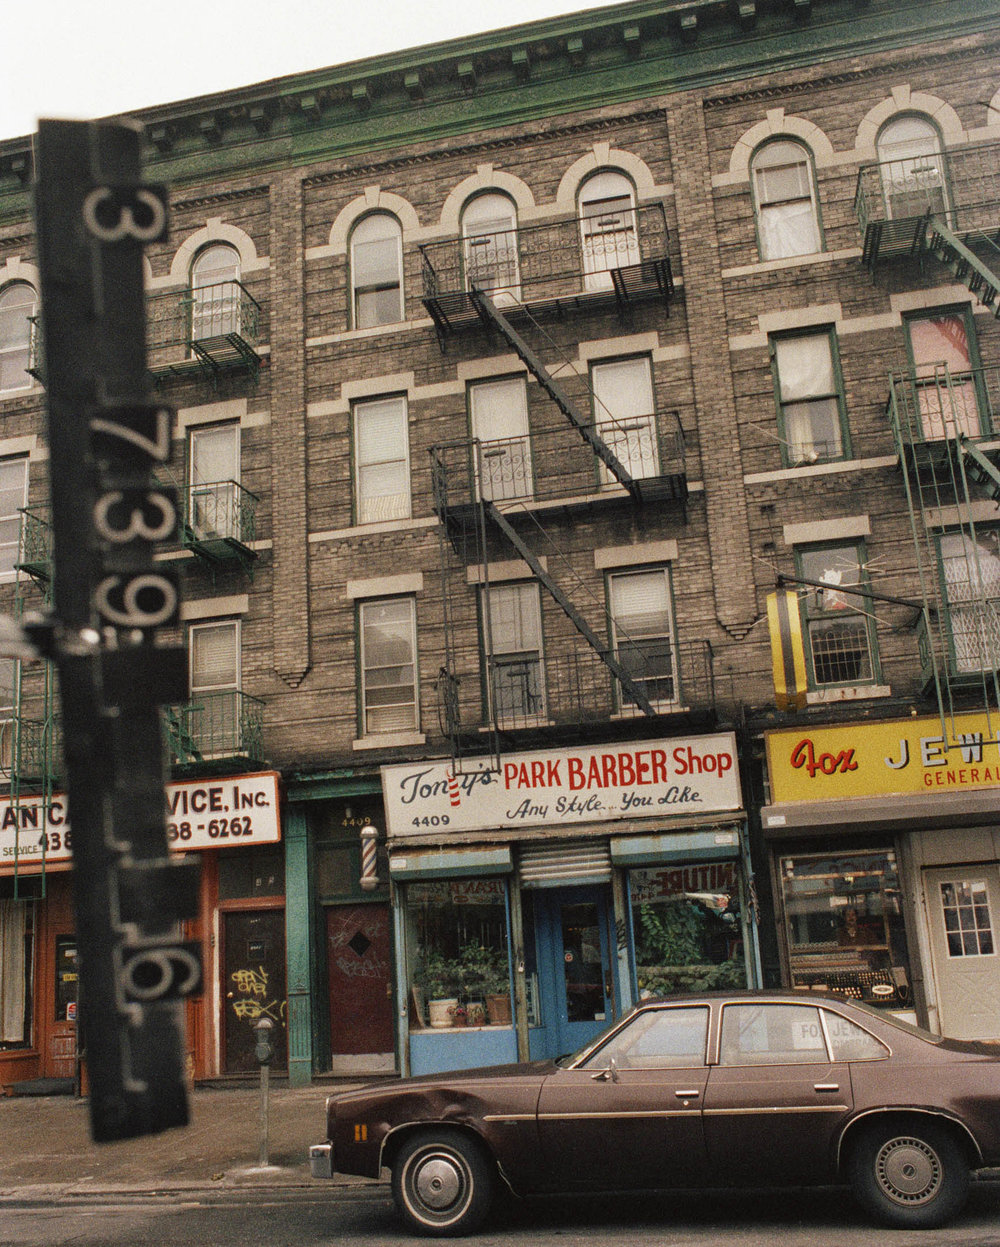 4409 5th Ave, Brooklyn, NY, mid-1980s. NYC Municipal Archives.